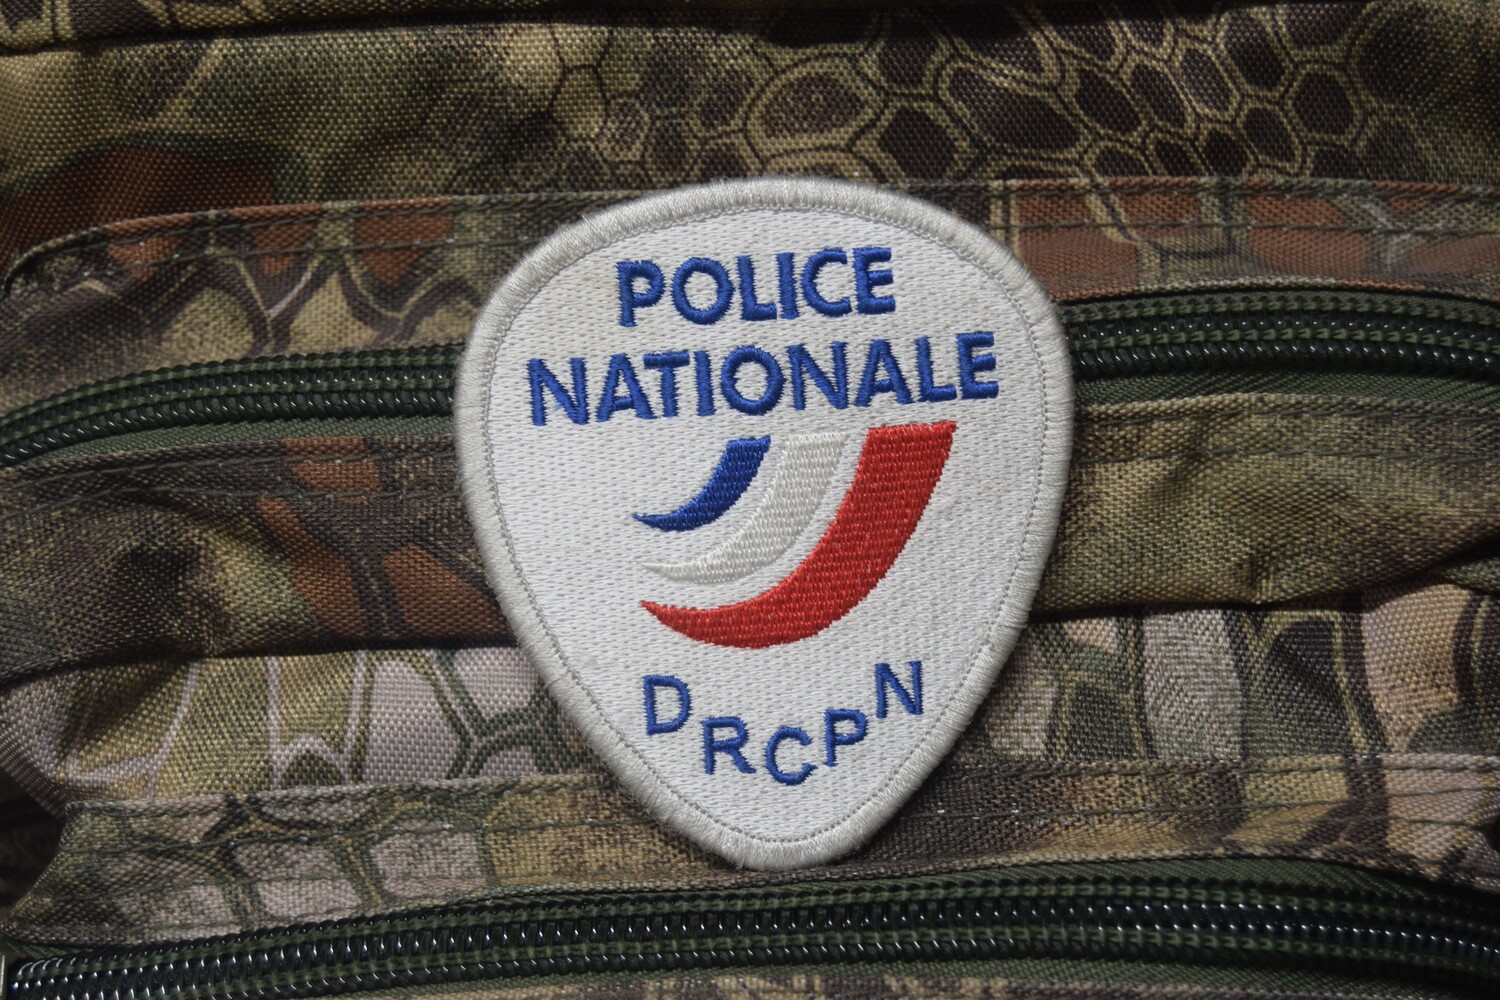 Patch Police Nationale DRCPN